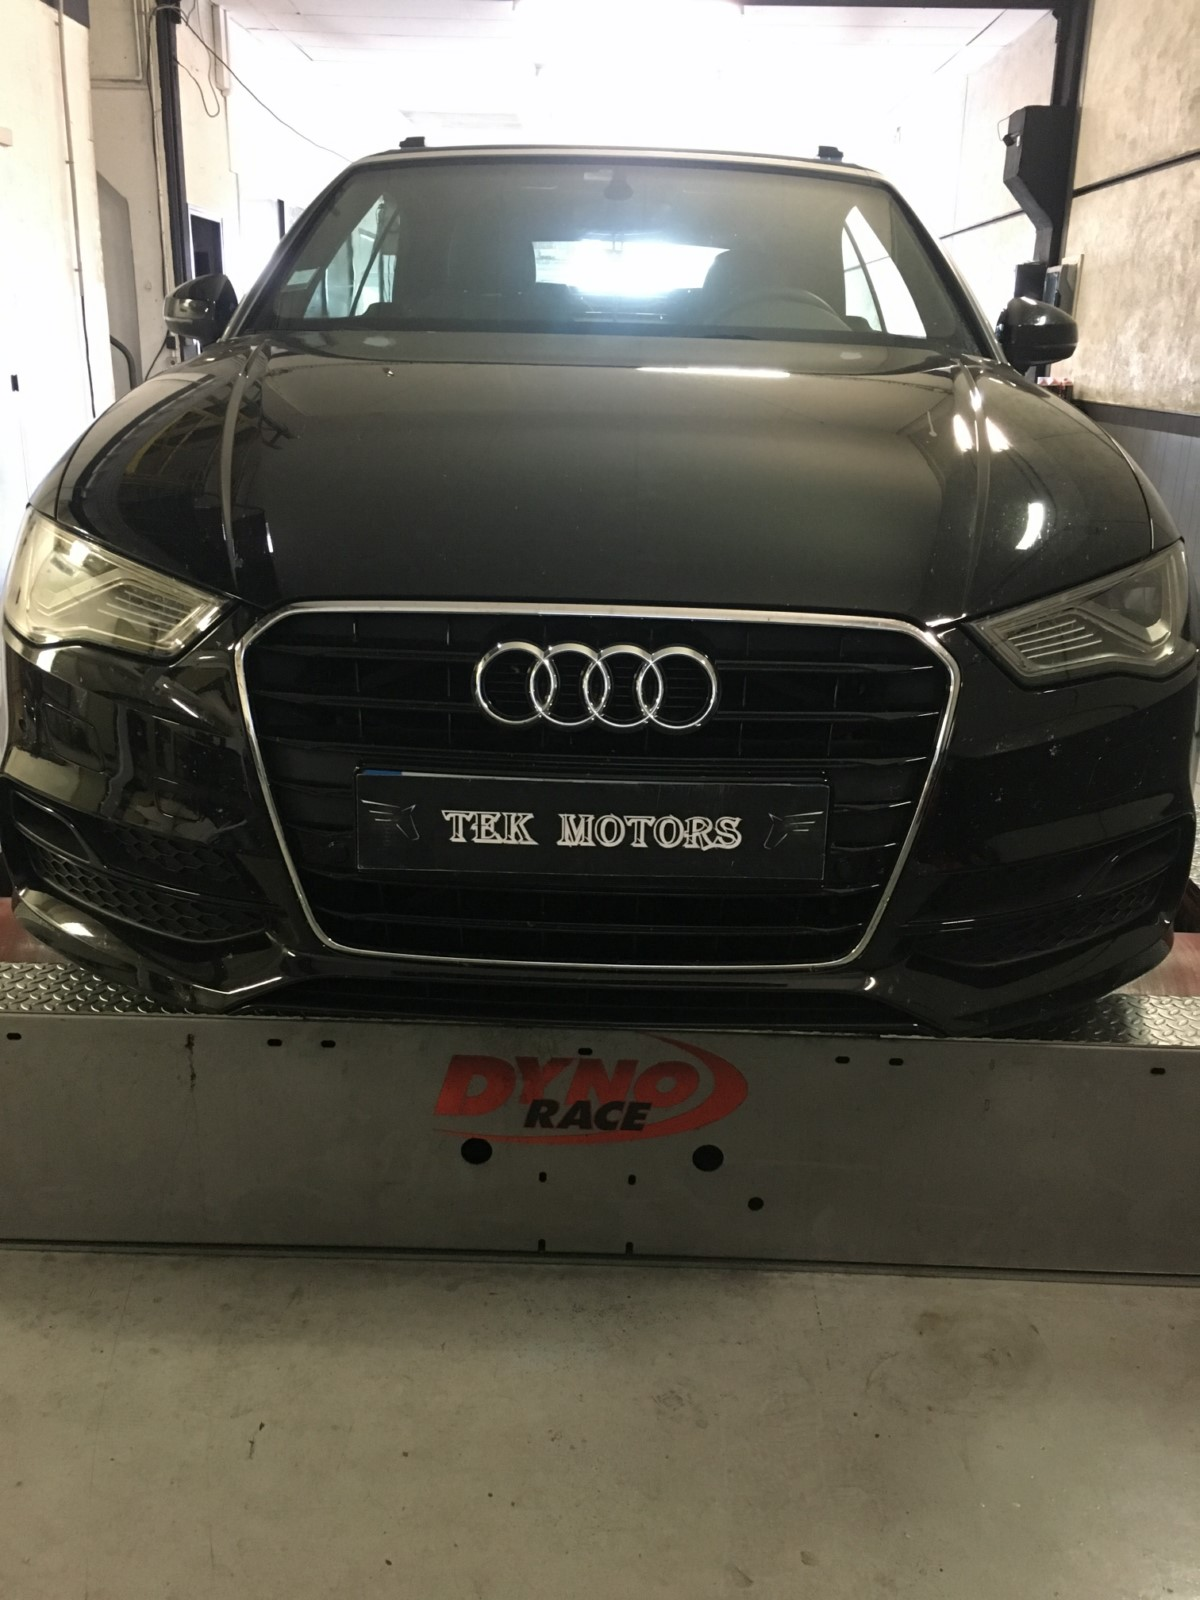 reprogrammation moteur audi a3 2 0l 150cv stage 1 gains impressionnants by tek motors i clamart. Black Bedroom Furniture Sets. Home Design Ideas